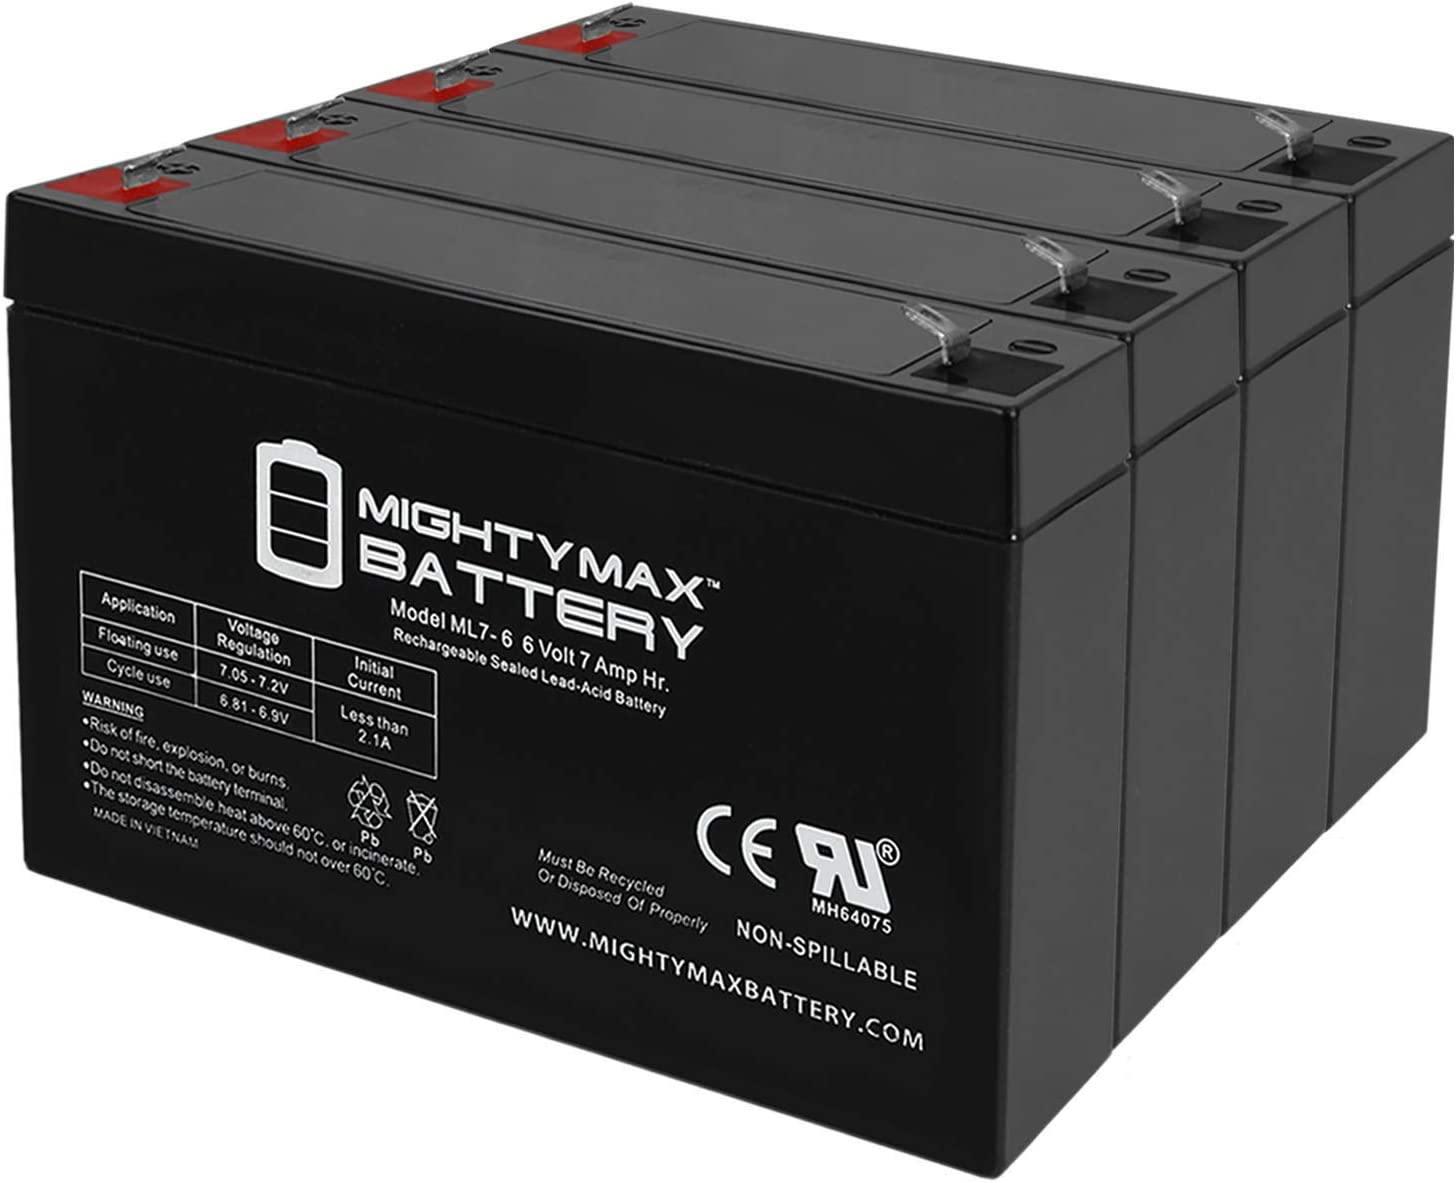 Mighty Max Battery 6V 7Ah SLA Compatible Rapid rise UPS Replacement 42% OFF